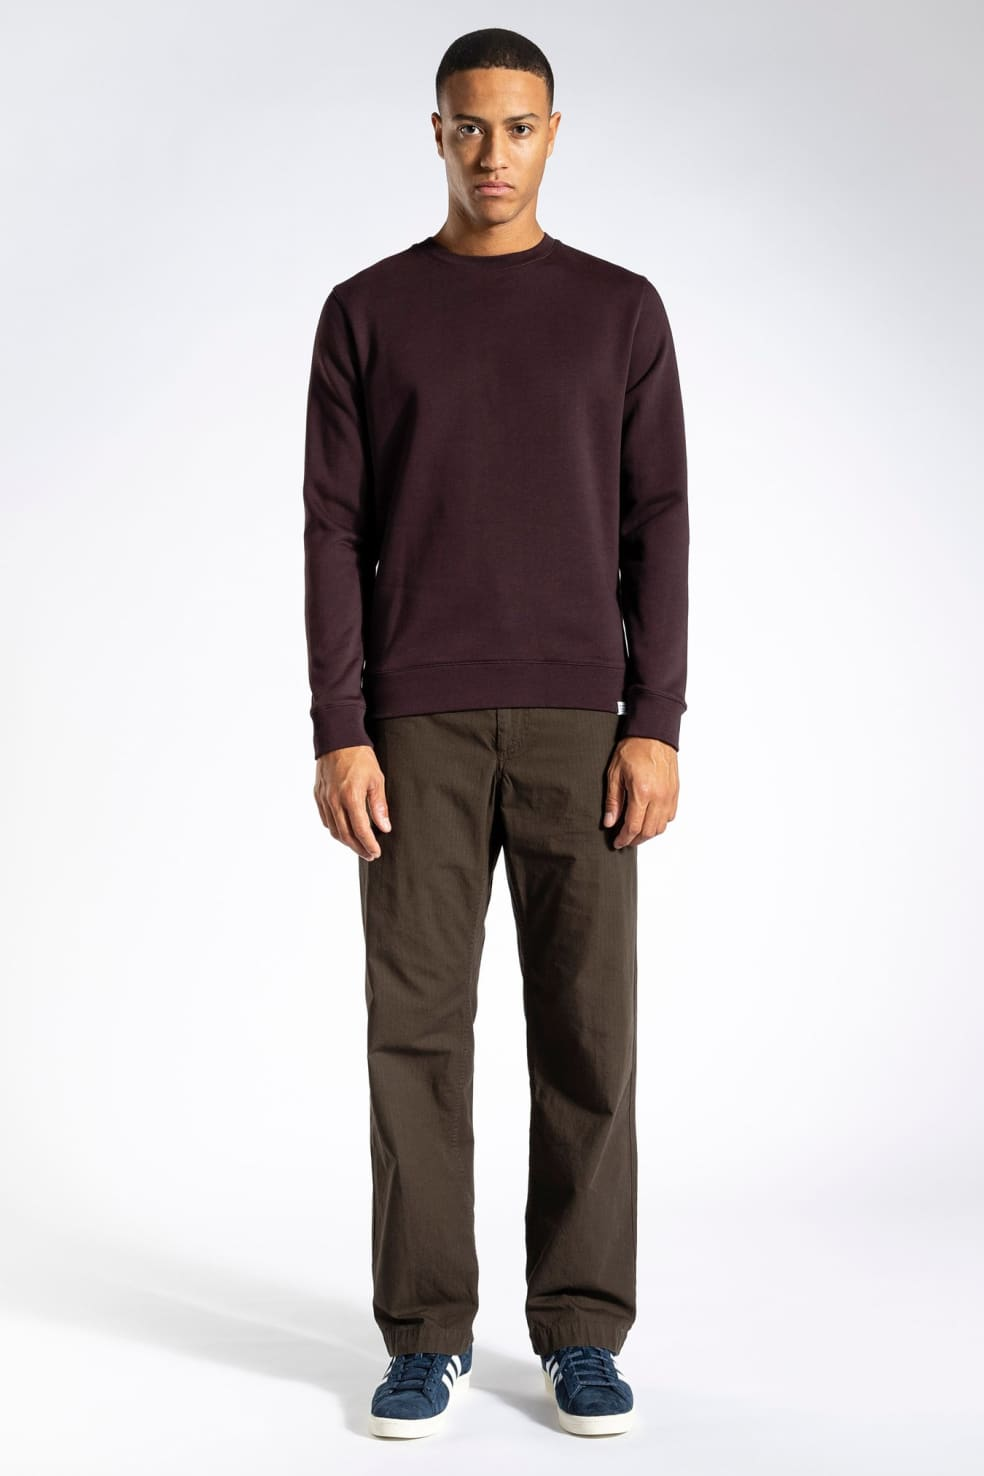 Norse Projects Vagn Classic Crew - Eggplant | Sweatshirt by Norse Projects 3